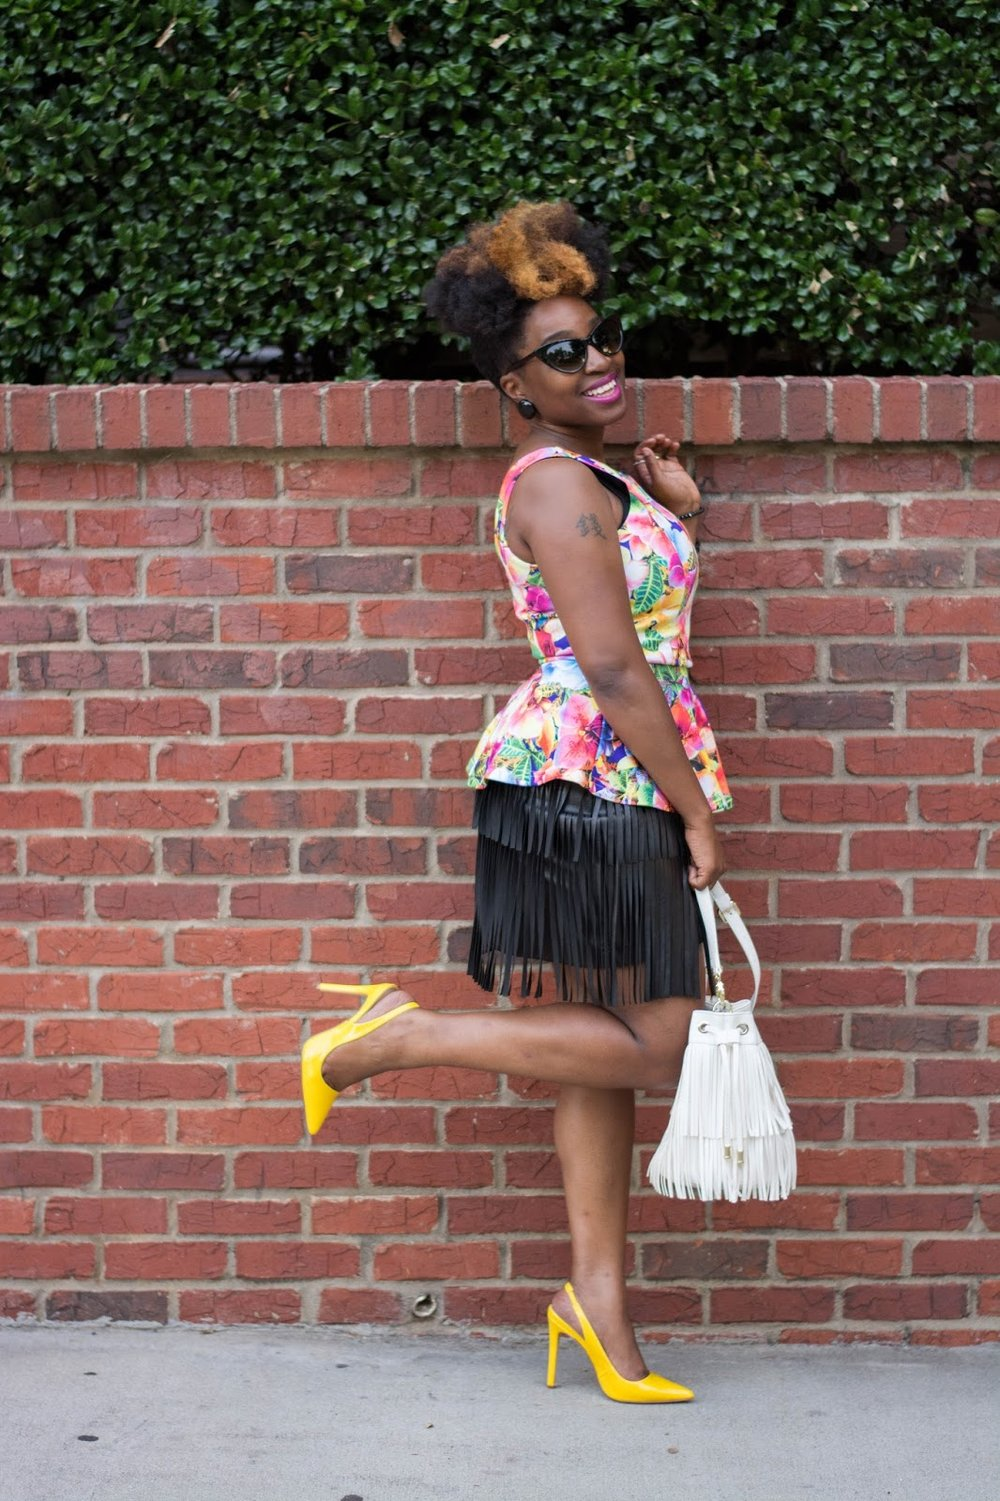 floral peplum, faux leather, fringe leather skirt, atlanta style blogger, style blogger, atlanta style, atlanta fashion, street fashion, altanta influencer, style influencer, black blogger, brown girl blogger, black girl magic, black girls rock, black girls killing it, thrifted fashion, plato's closet, shoedazzle, fringe handbag, natural hair, naturals rock, 4c natural hair chick, black skirt